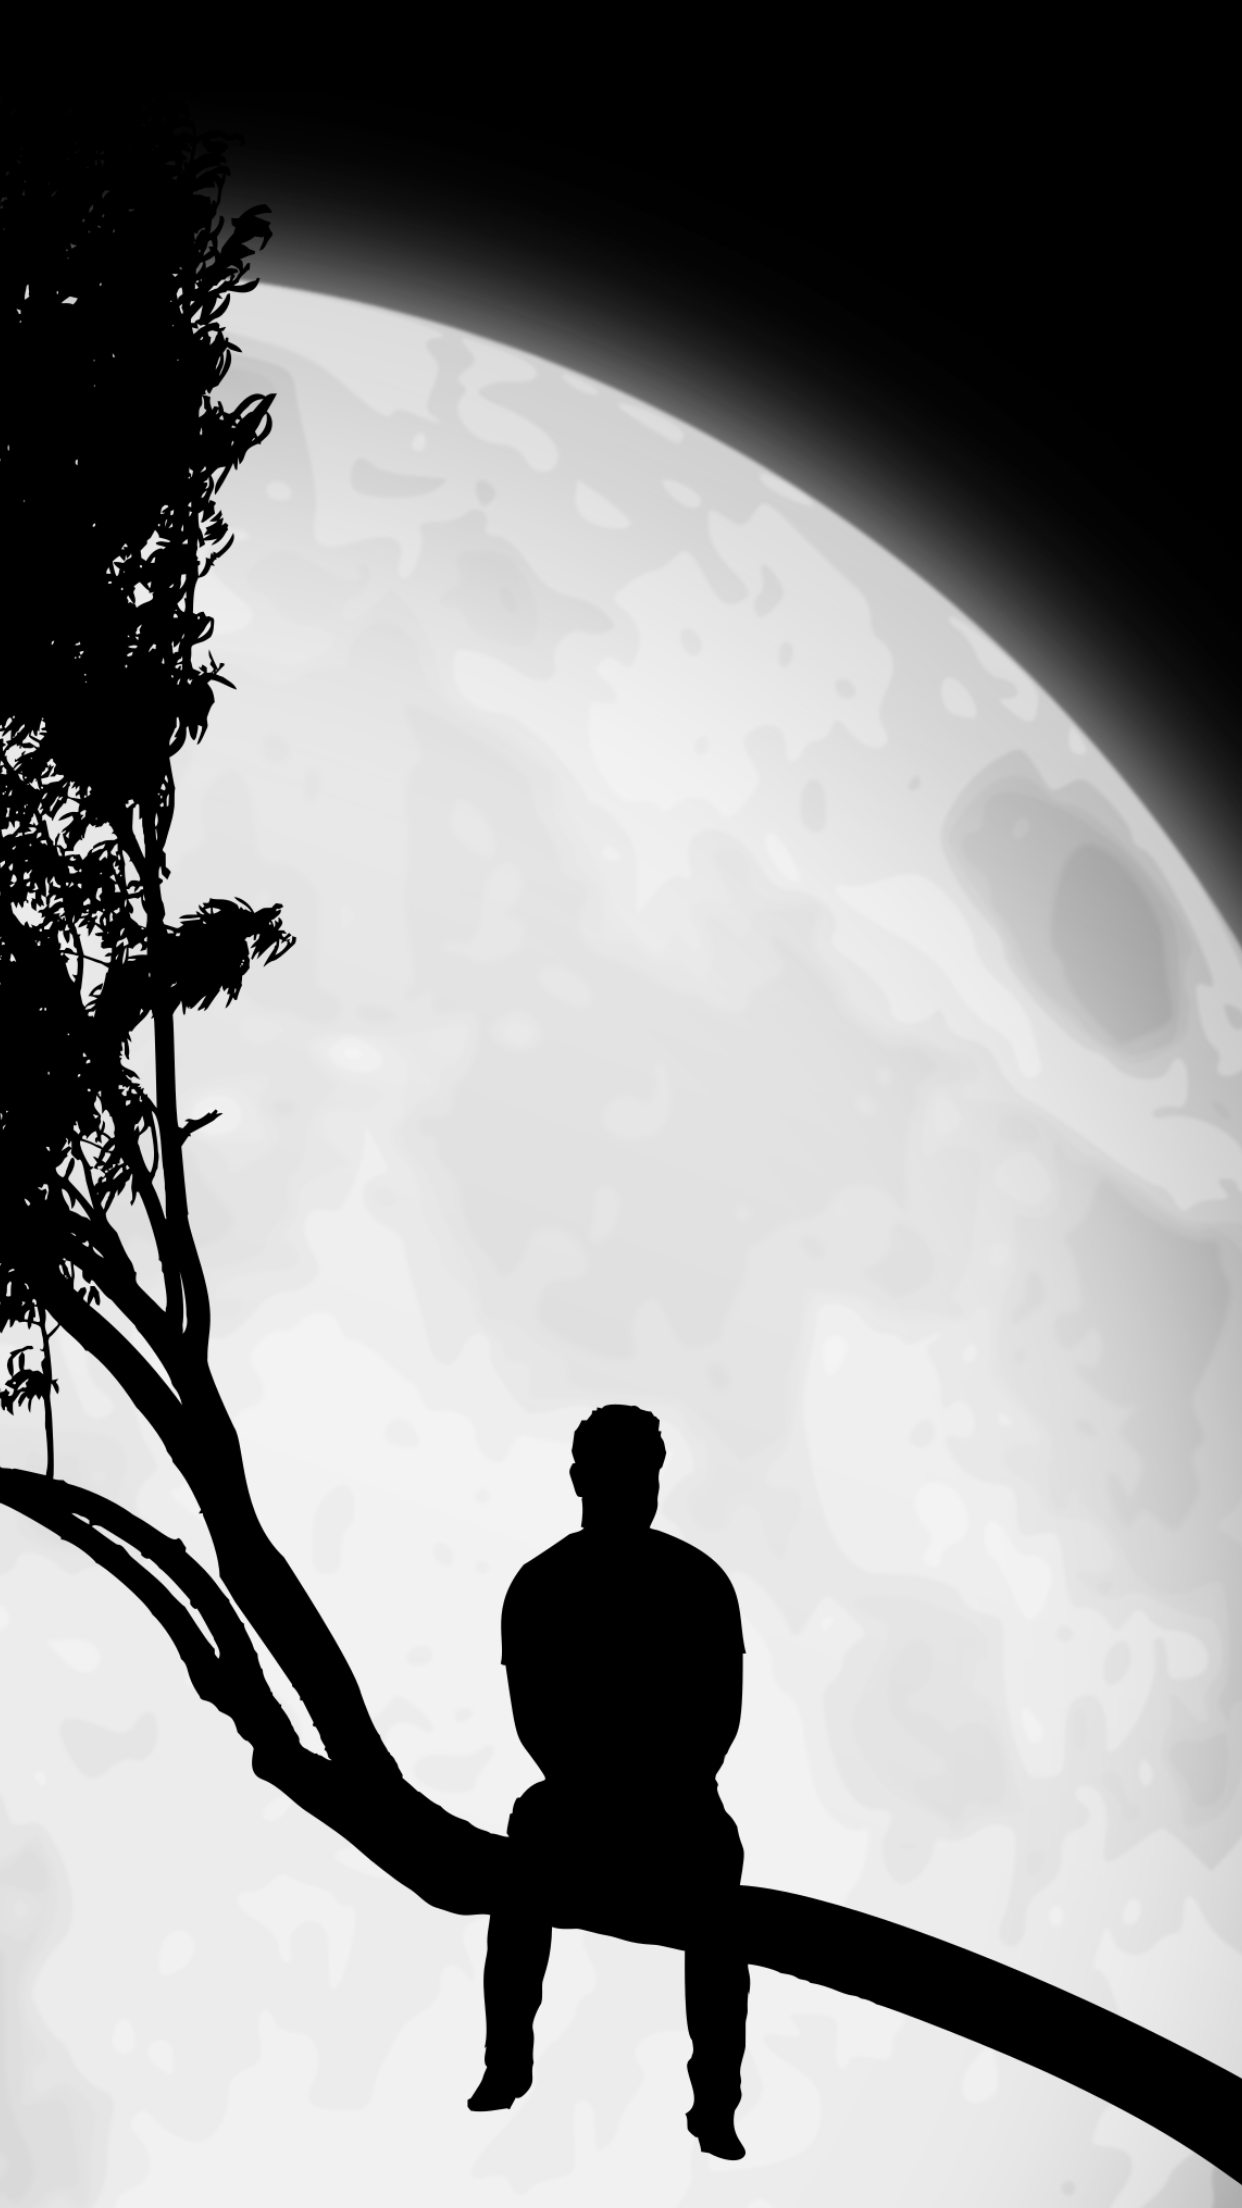 Alone with moon alone boy wallpaper boys wallpaper wolf moon melancholy cover